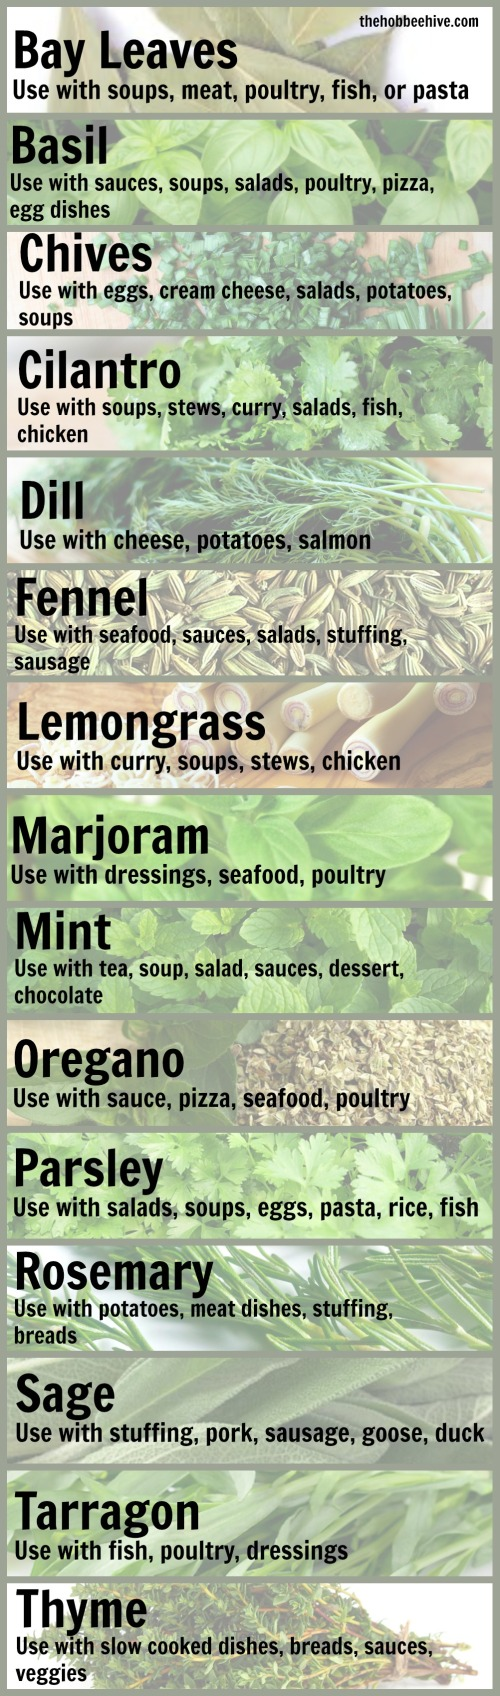 common-uses-for-common-herbs